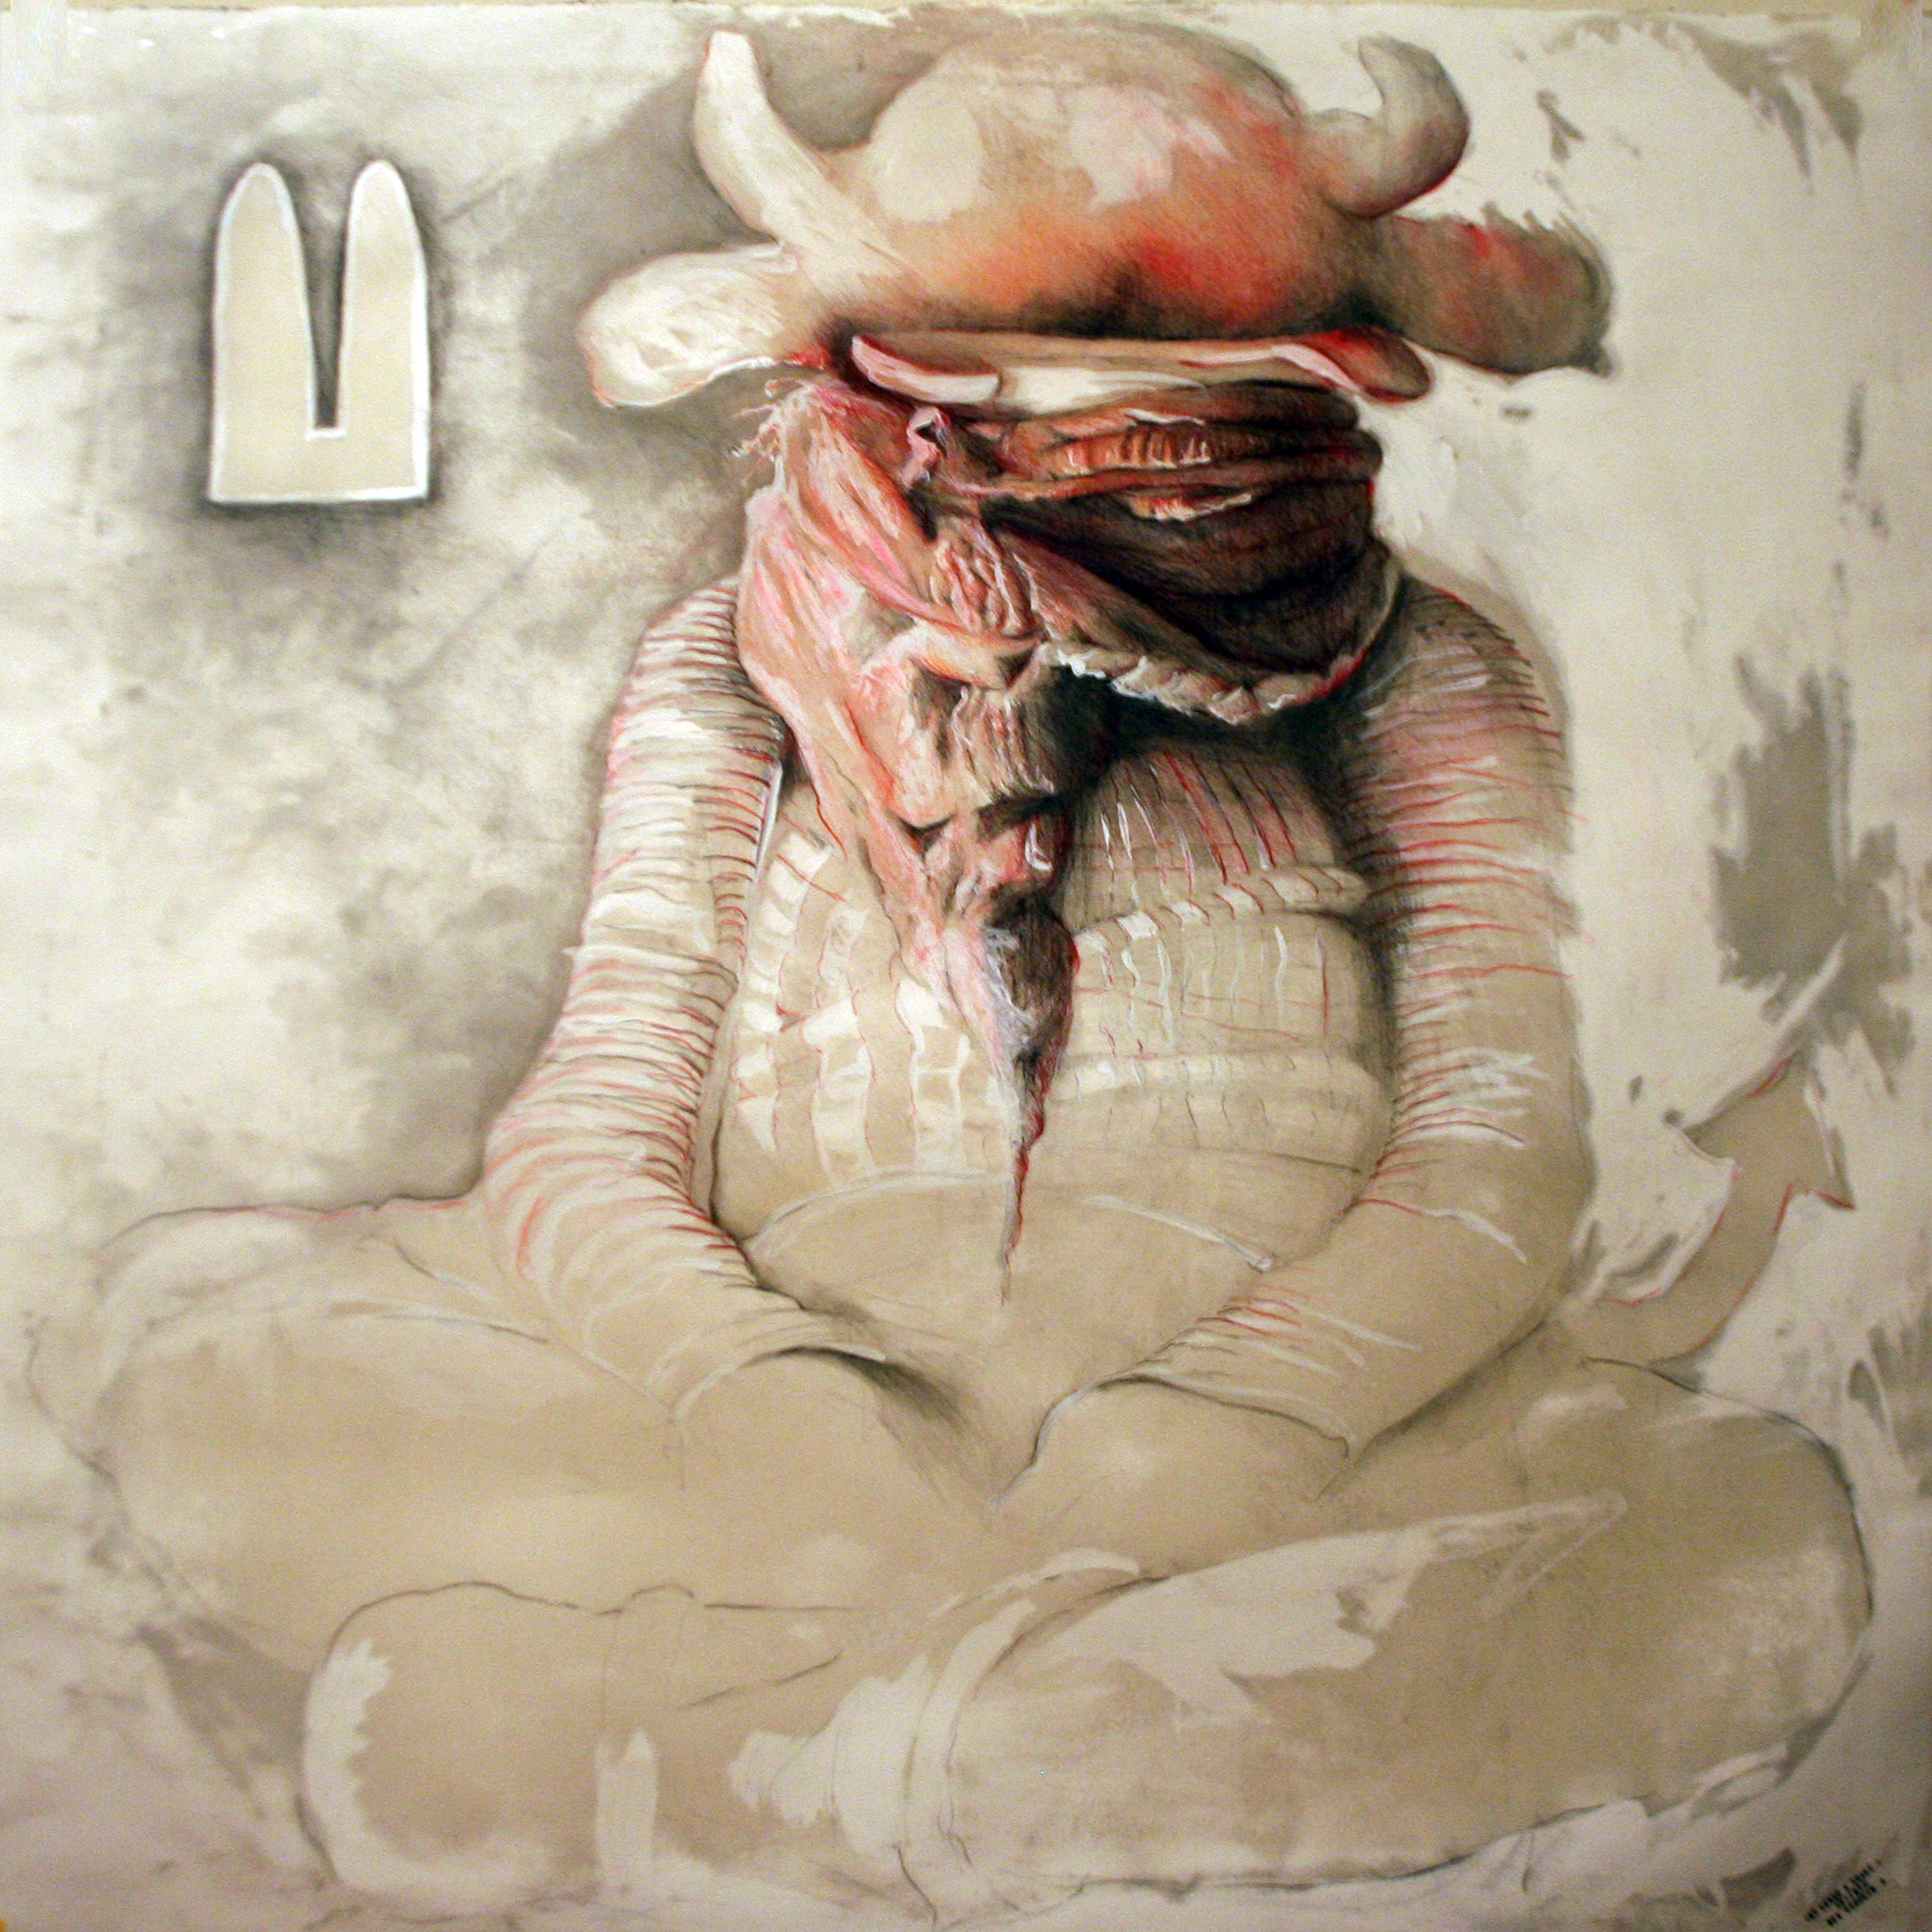 At least a snake n. 4/4 2012  pencil, pastels, chalk and wax on paper  40x40 inches